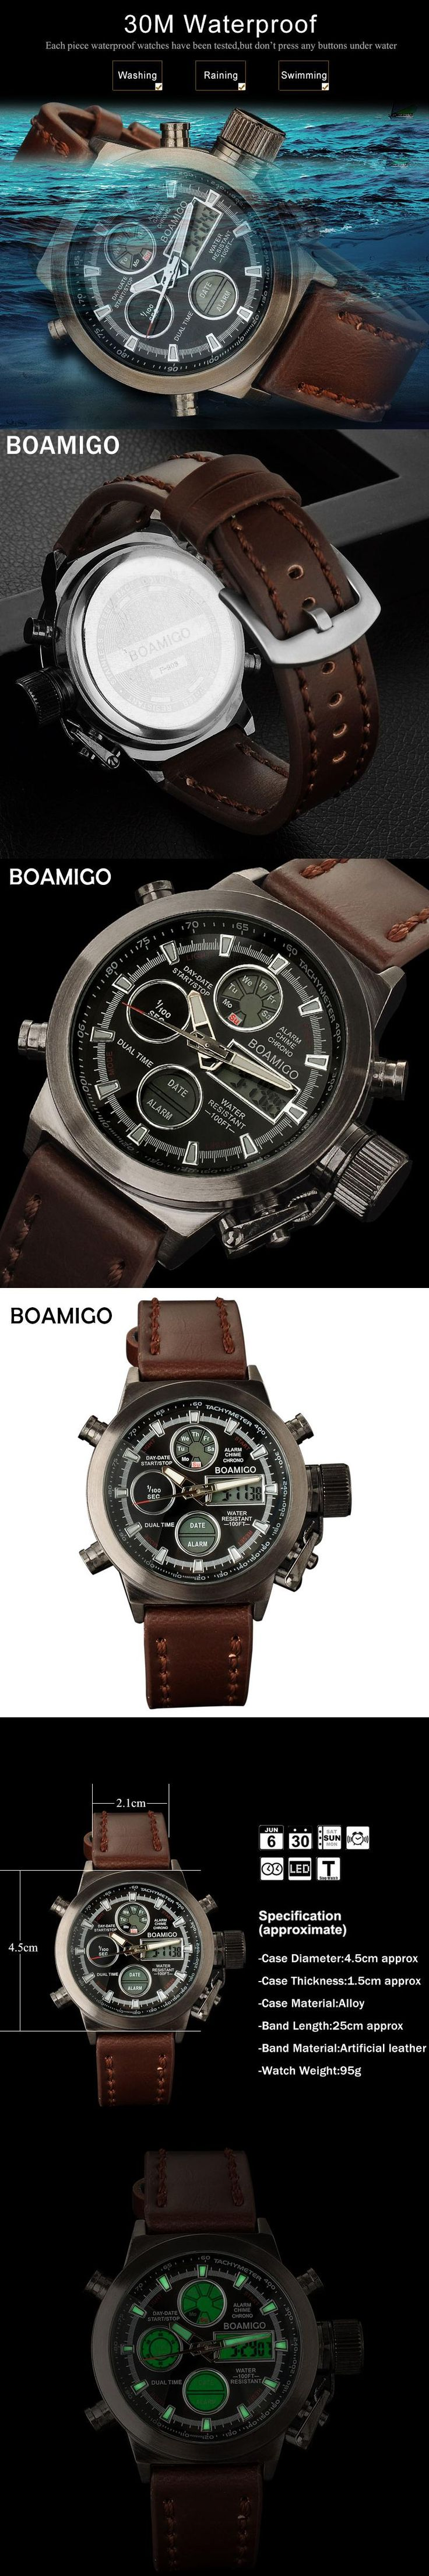 BOAMIGO men sports watches brown leather band man military quartz LED digital analog casual wristwatches waterproof reloj hombre